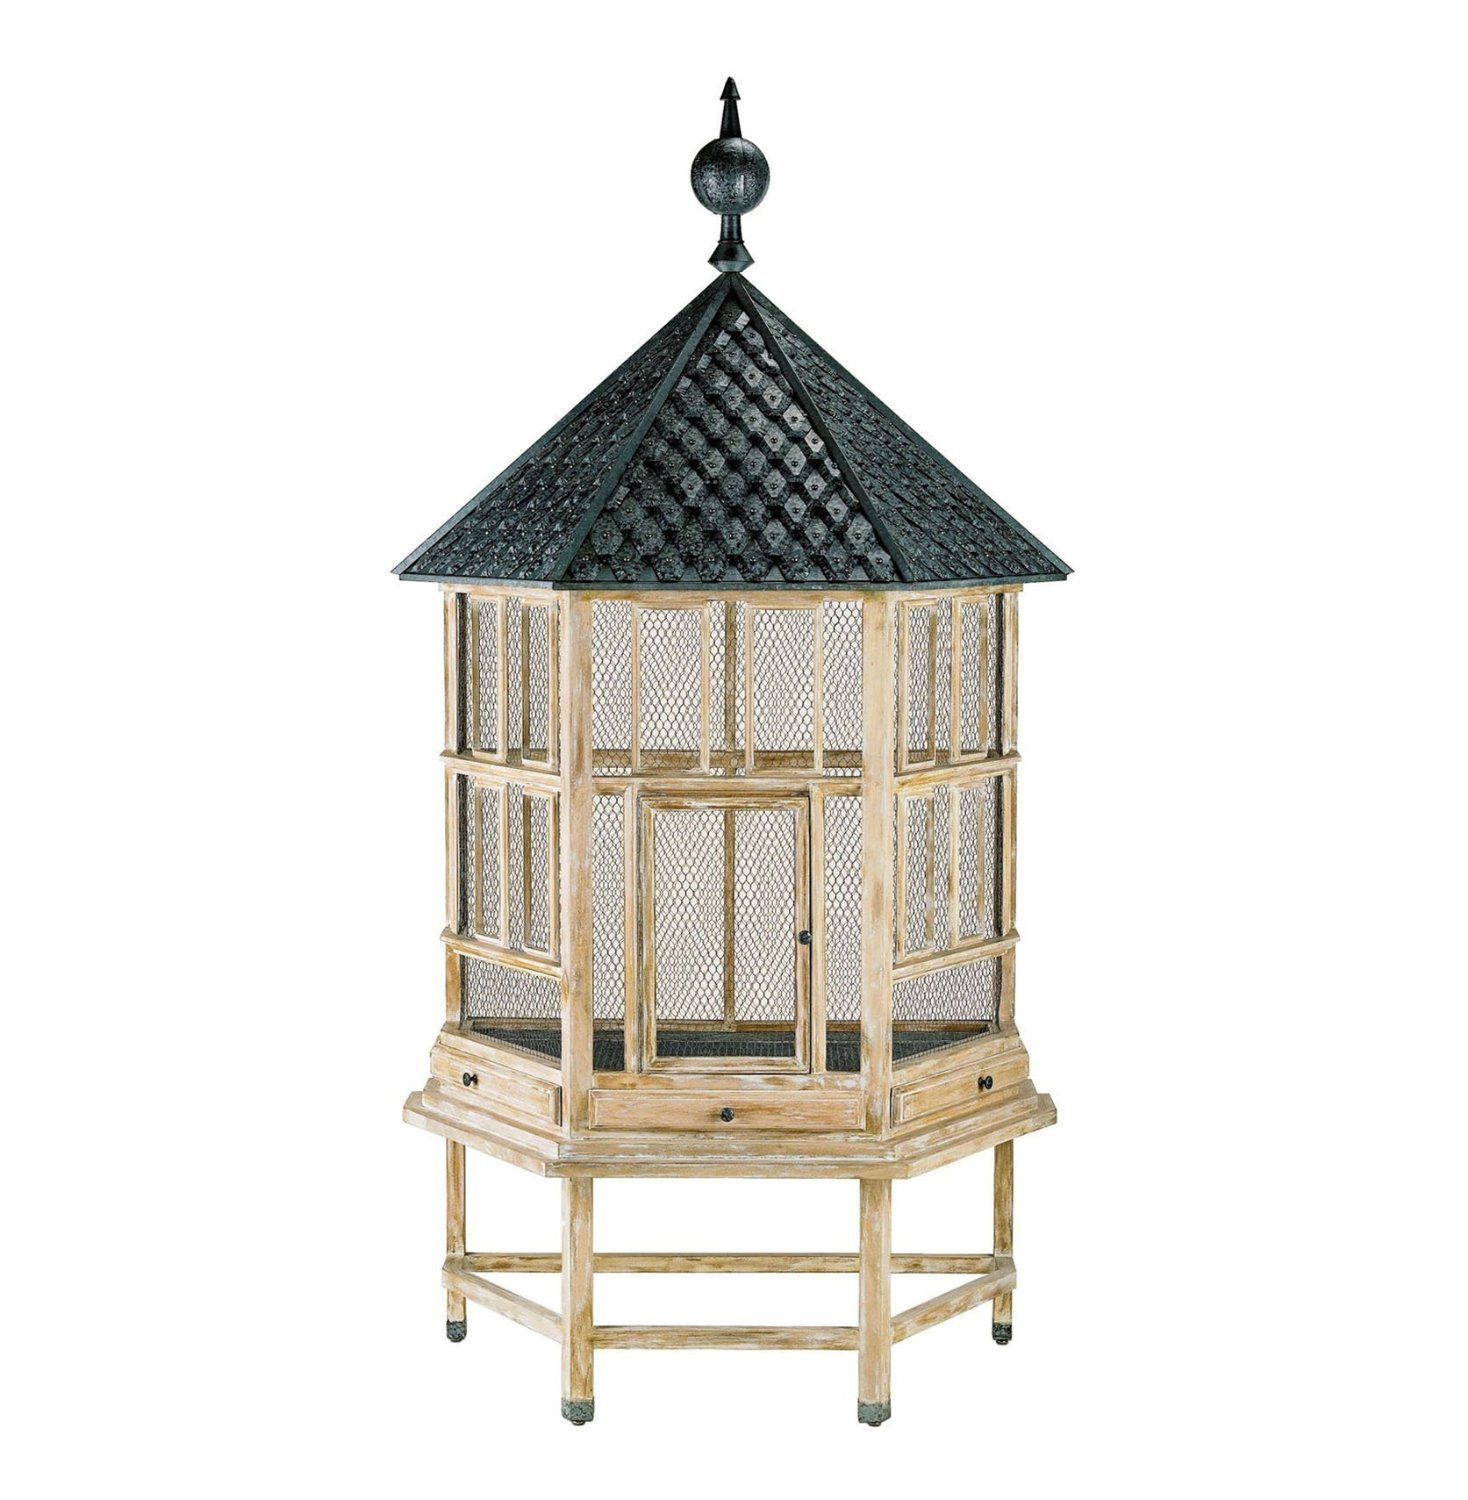 Antique White Tin Roof Floor Standing Large Bird House Cage Aviary ...